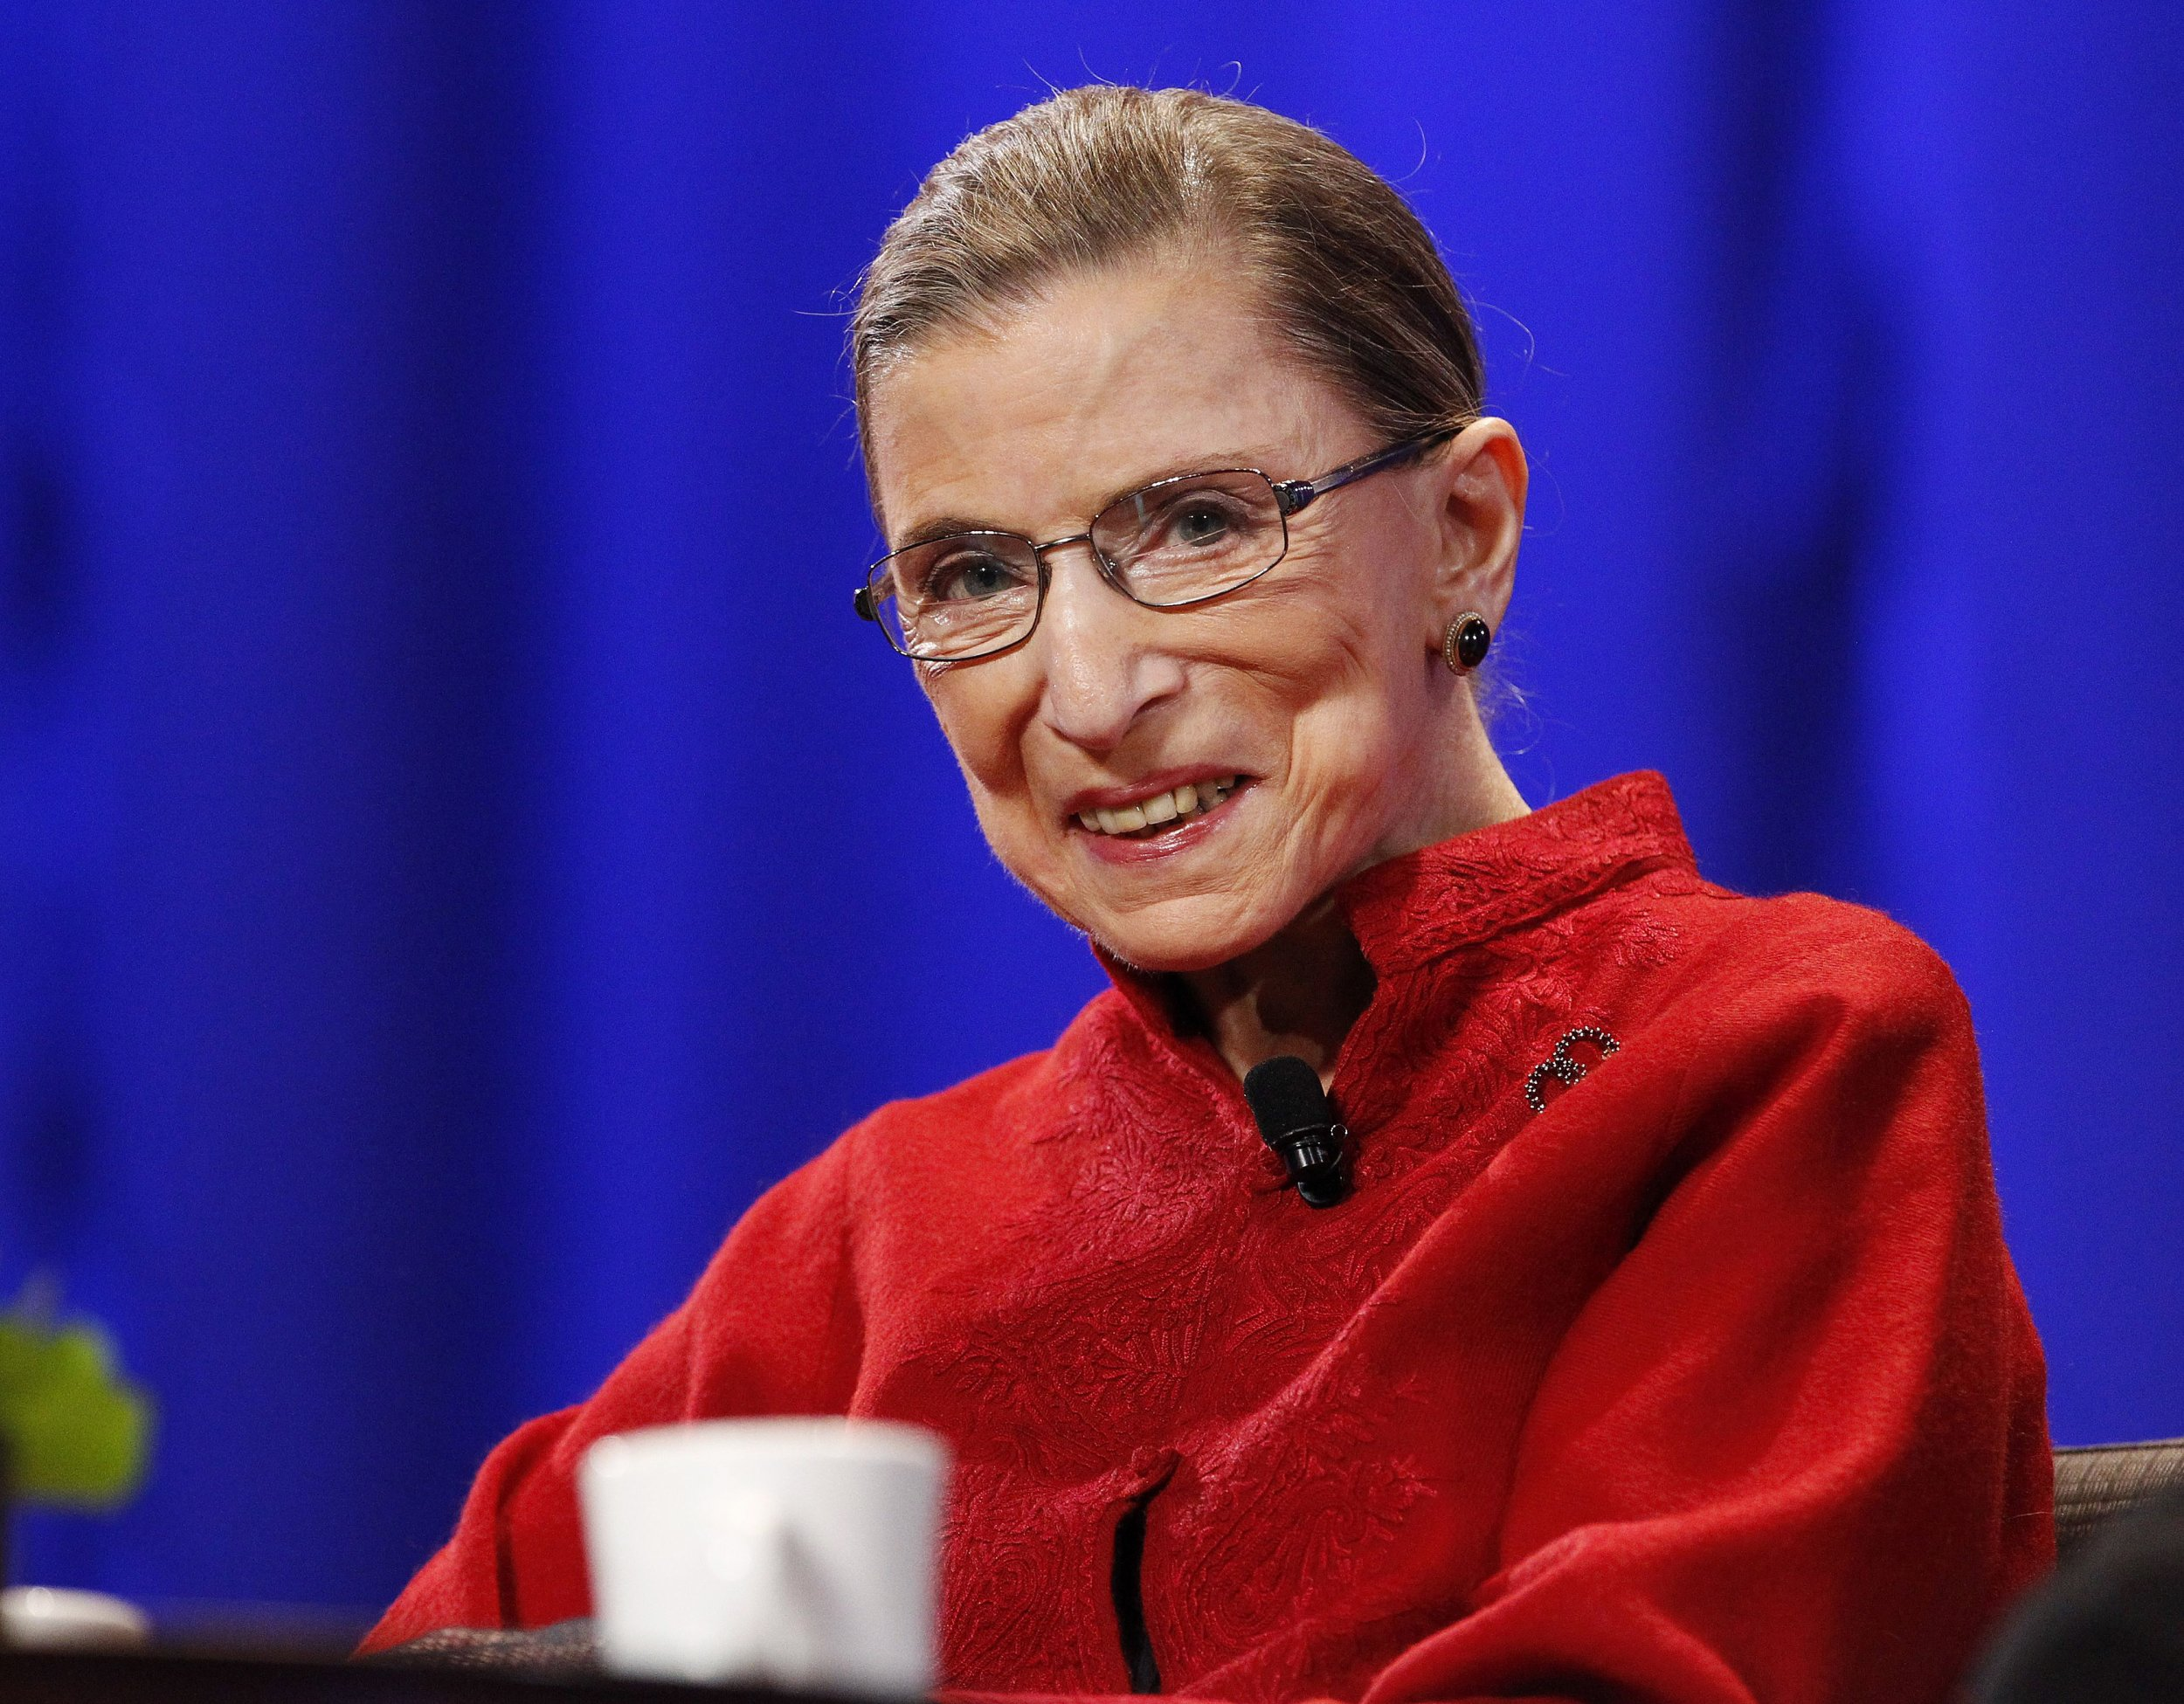 ruth bader ginsburg - photo #29